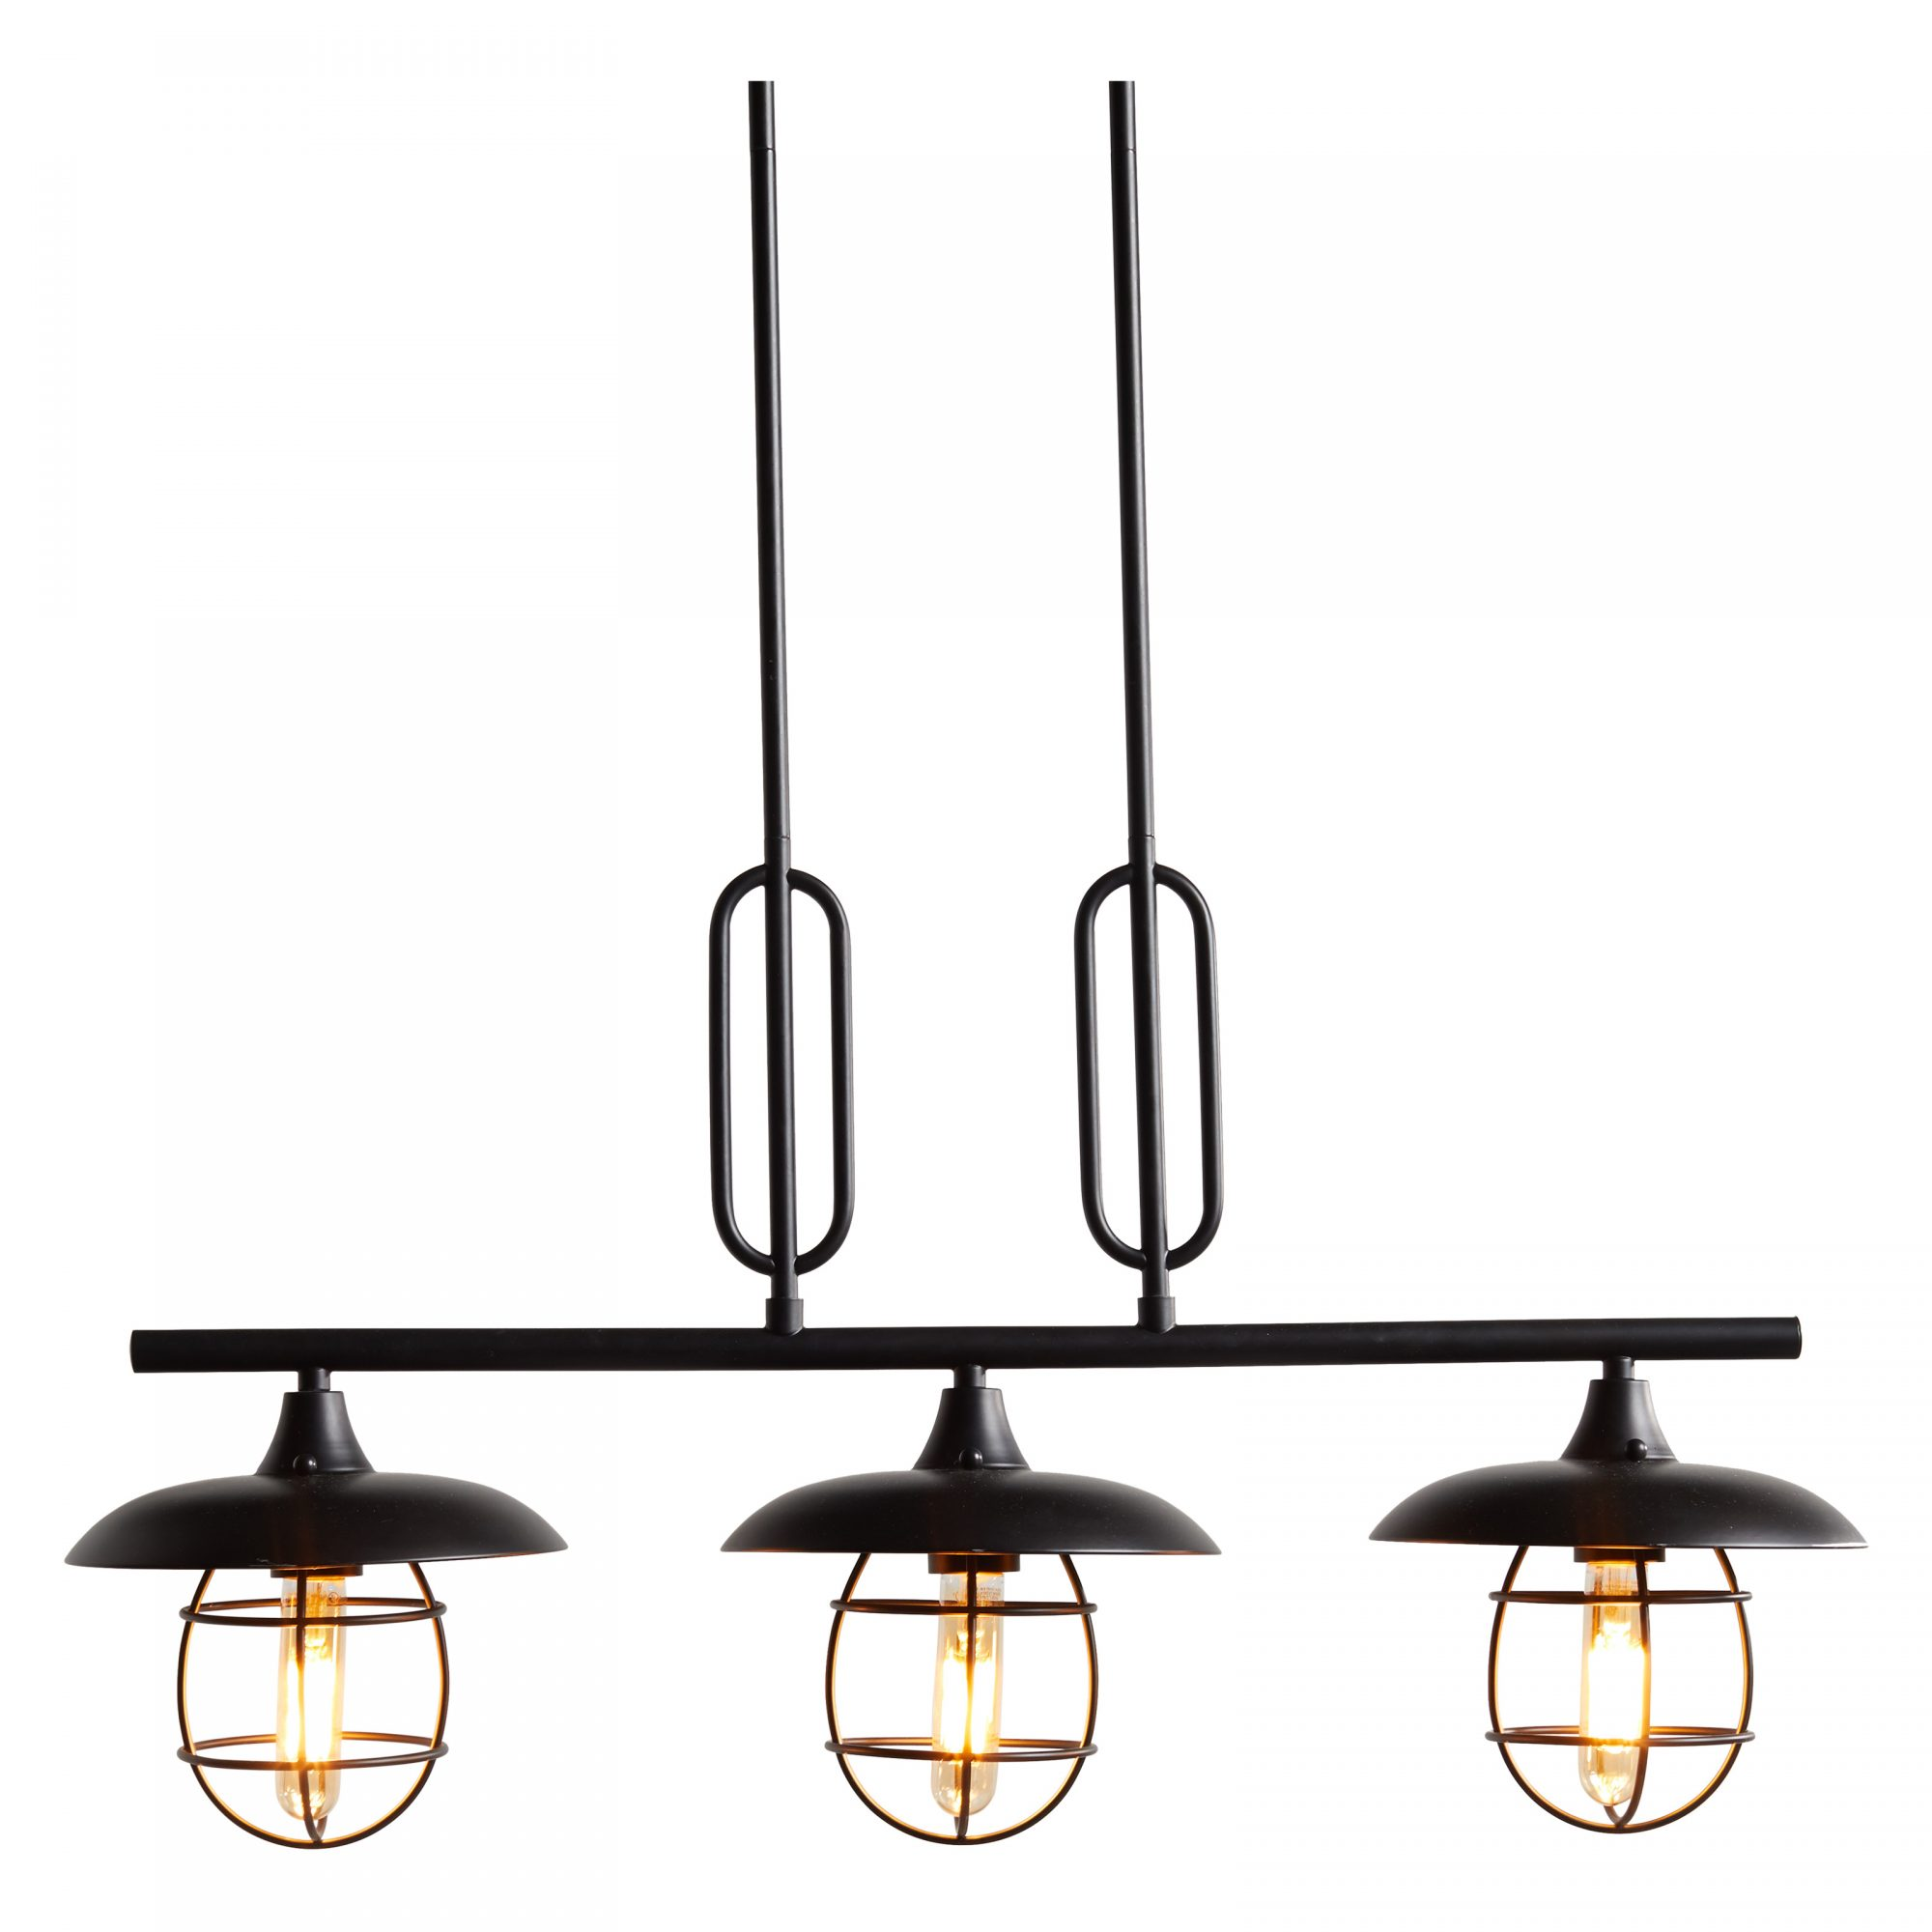 Walmart New Home Collection: MoDRN Industrial Metal Wire 3 Light Island Pendant Black Finish